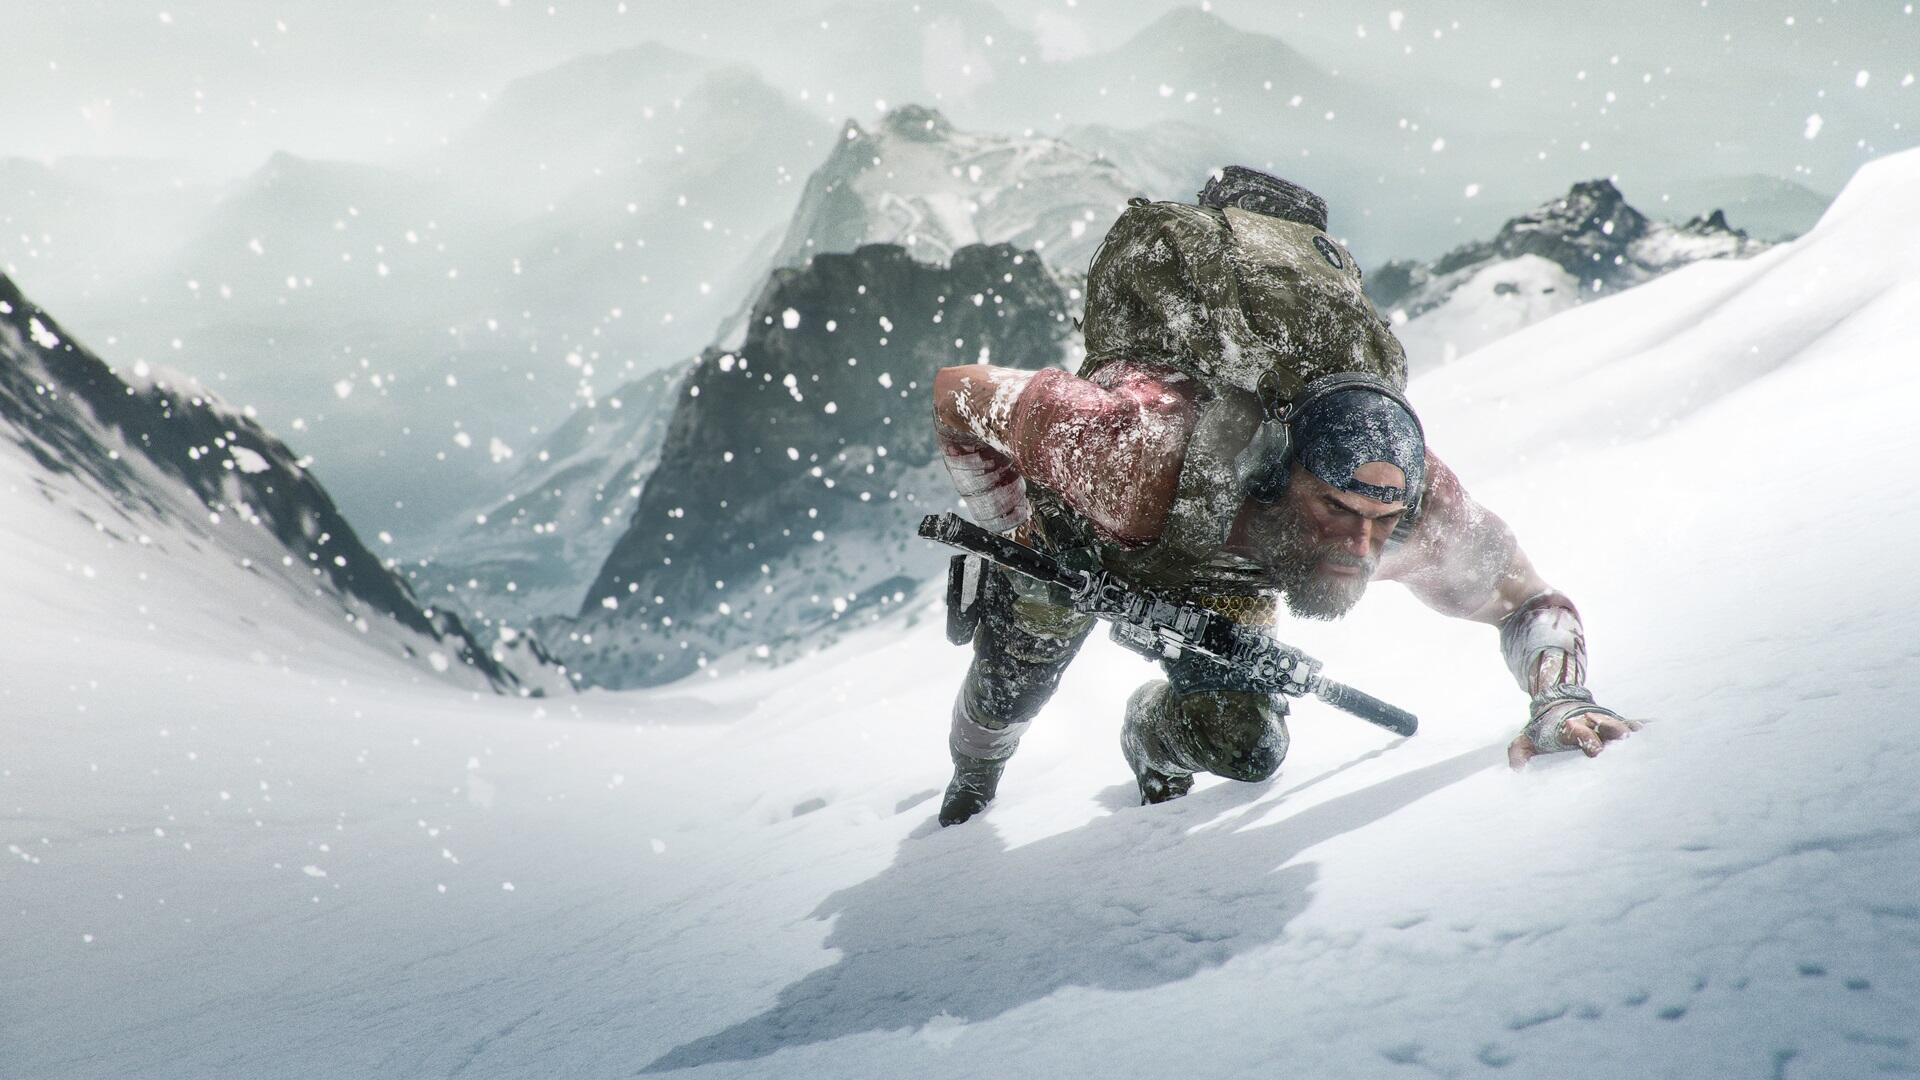 Ghost Recon Breakpoint: How to Switch to Third Person Aiming From First Person